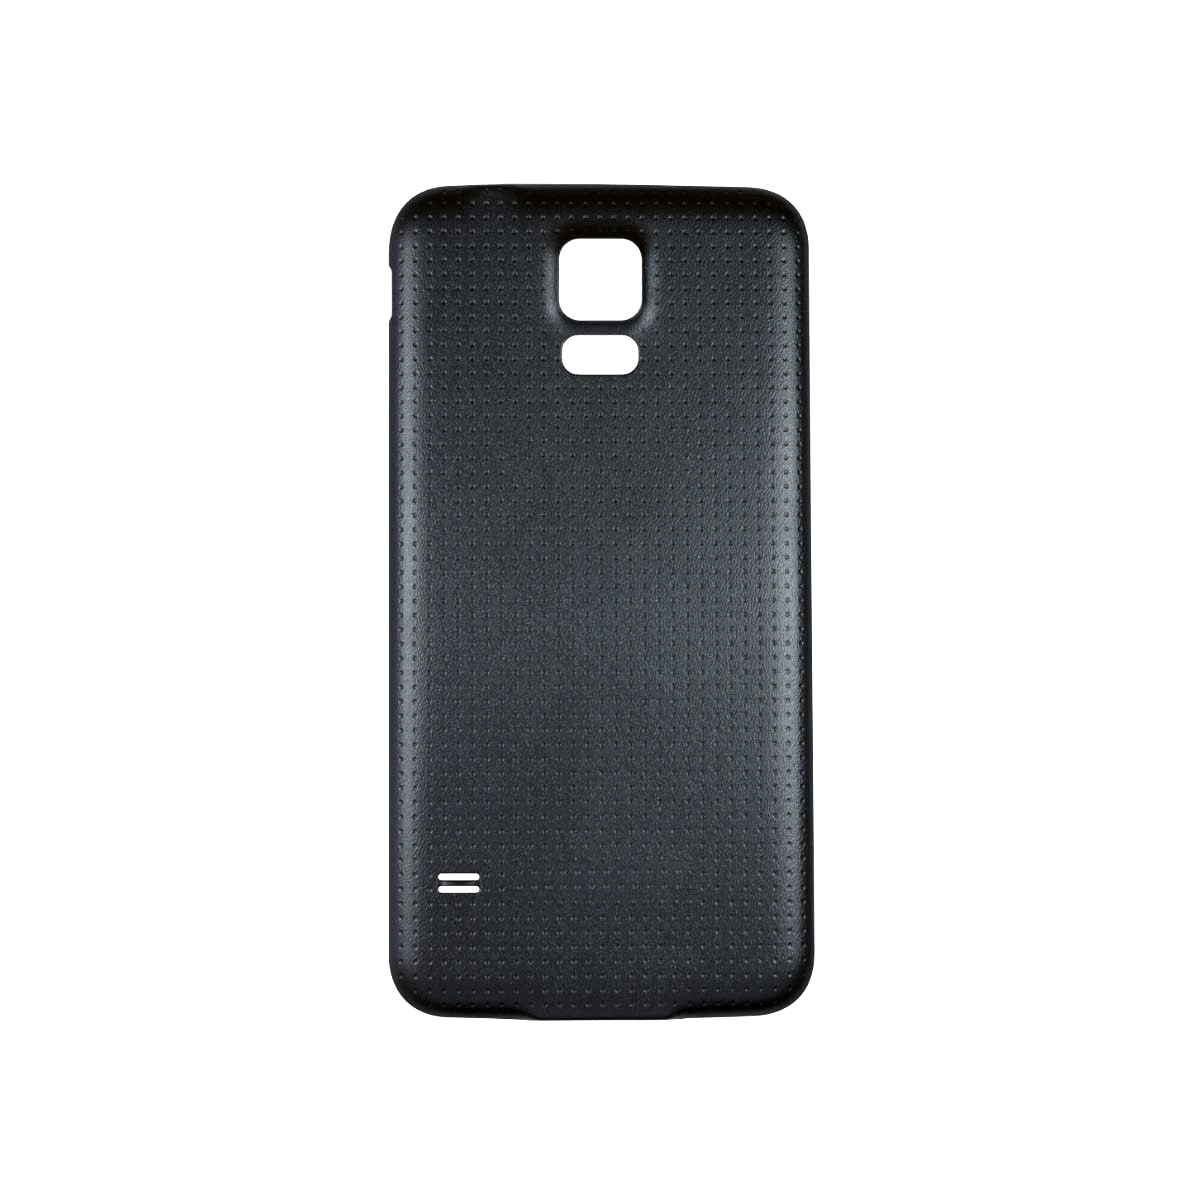 Samsung Galaxy S5 Back Battery Cover Replacement